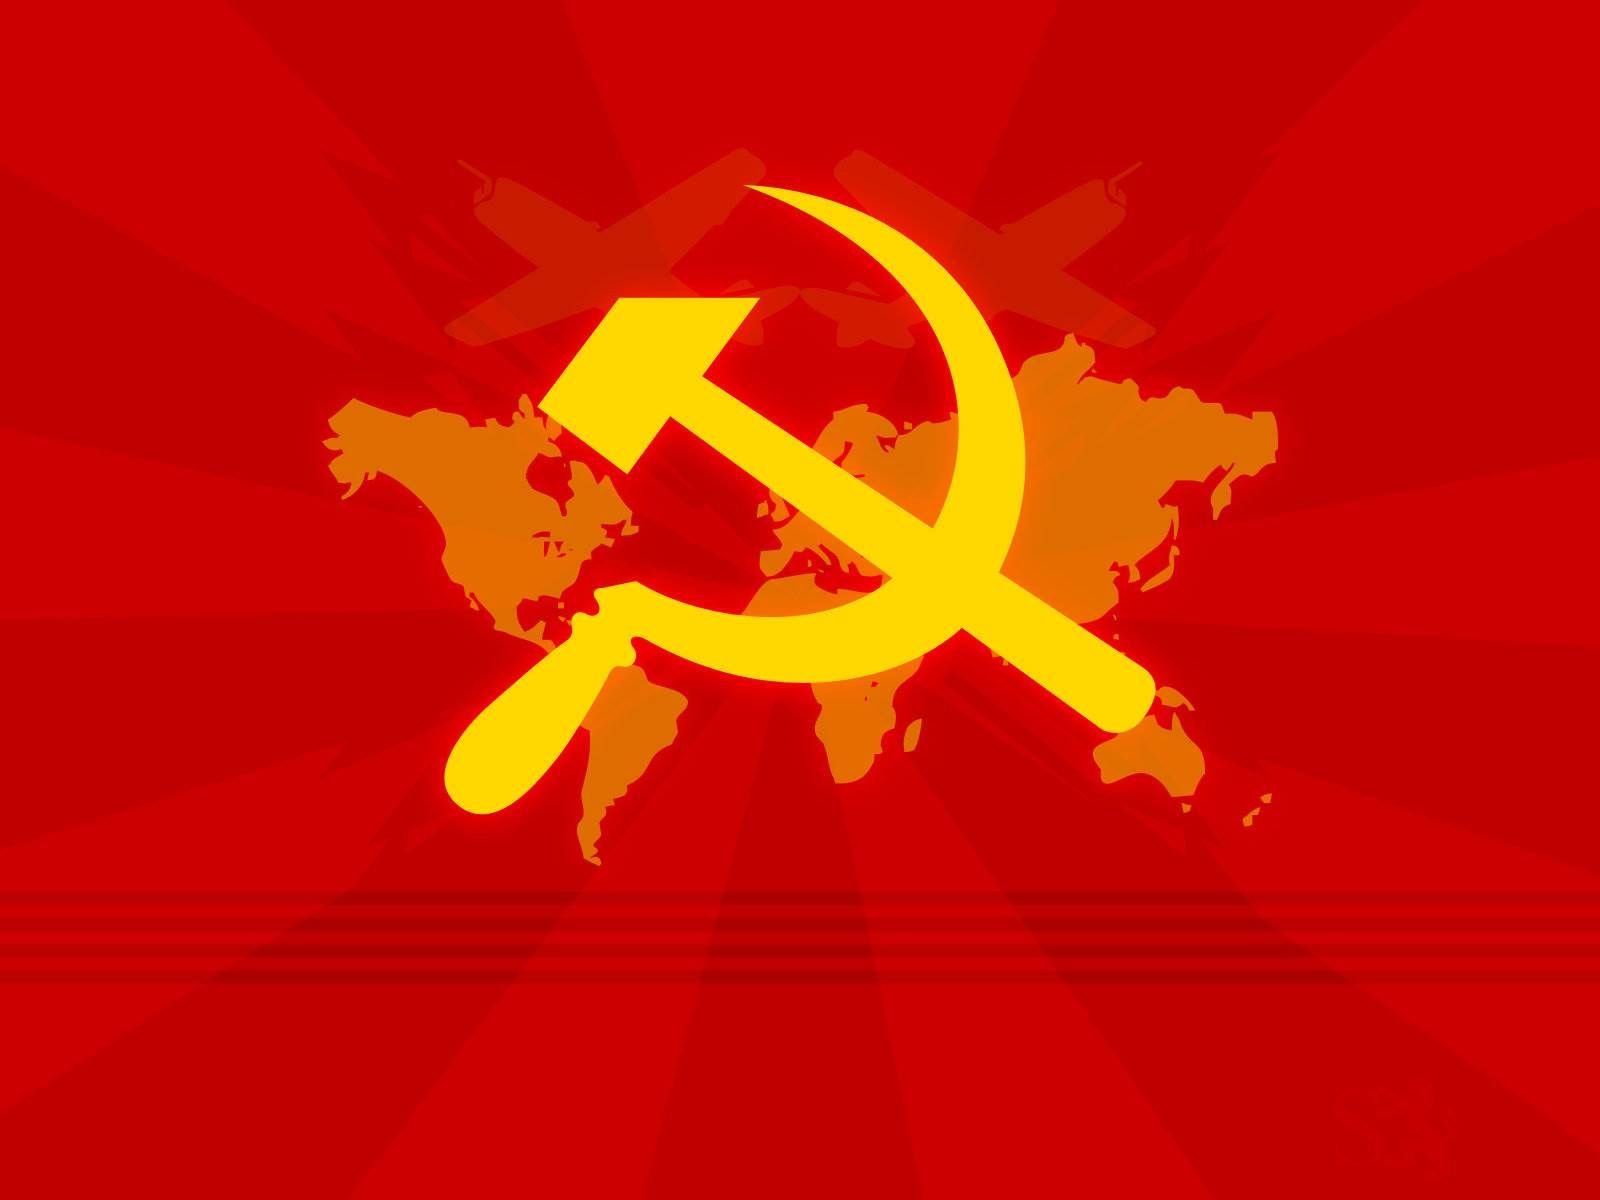 a hammer and sickle icon crossing each other. They are colored yellow over a red background